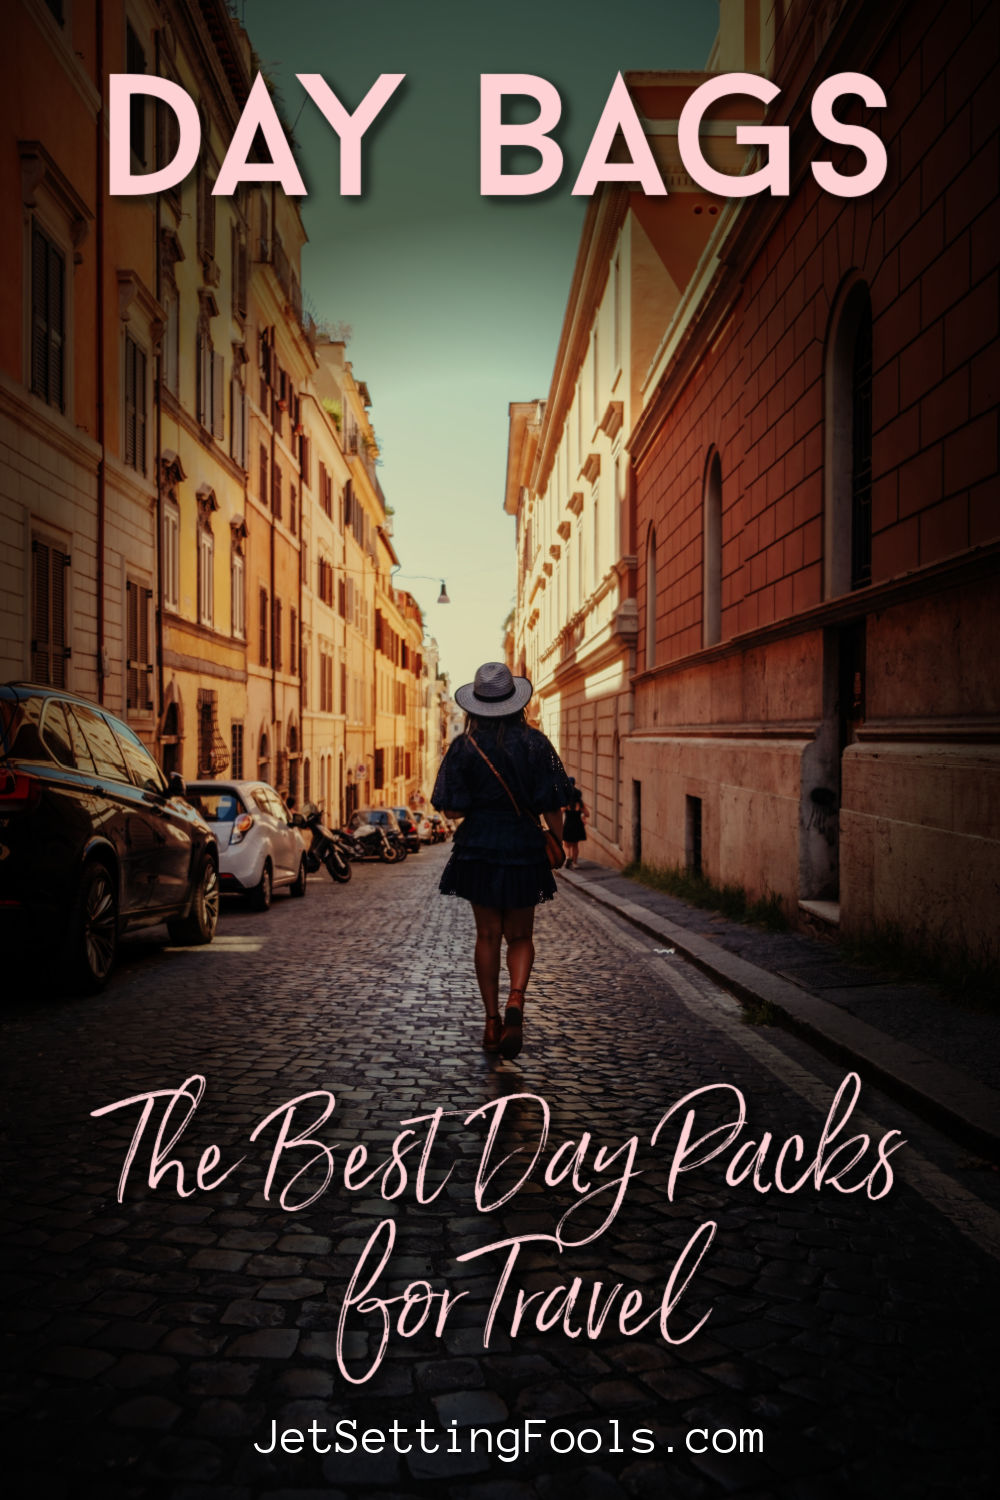 Best Day Packs for Travel by JetSettingFools.com